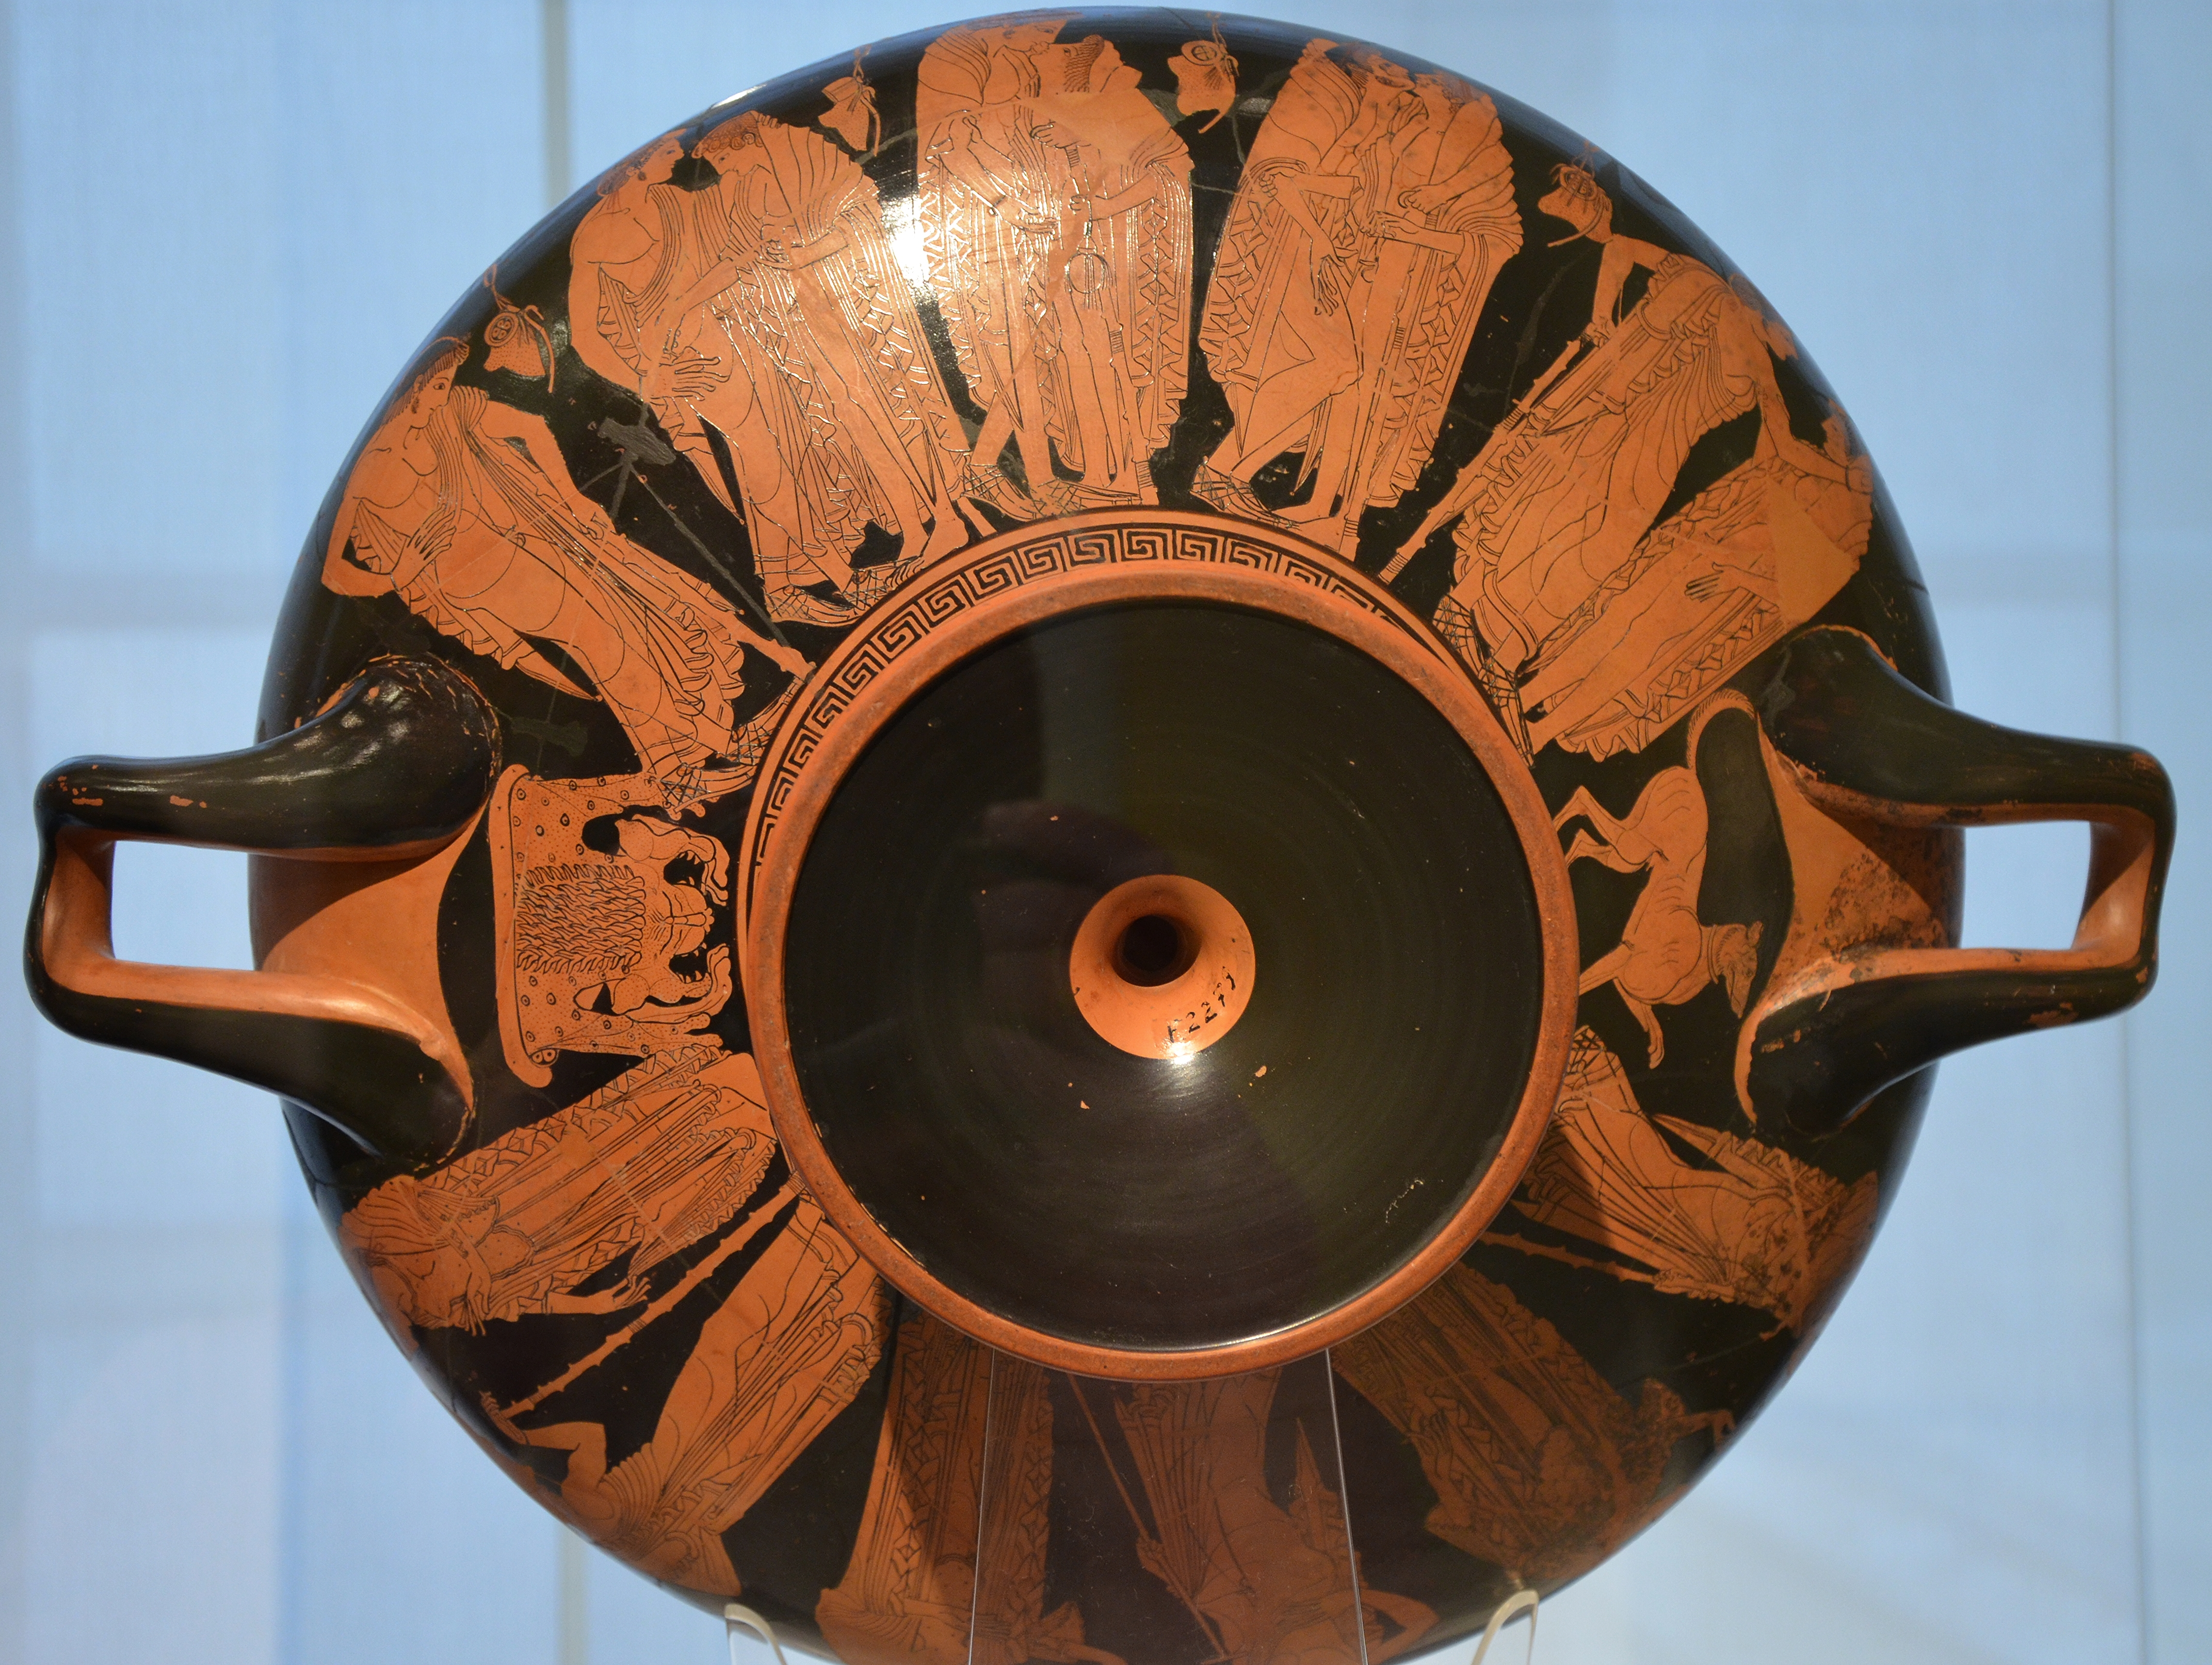 [Image: Attic_red-figure_drinking_cup_with_signa...15830).jpg]